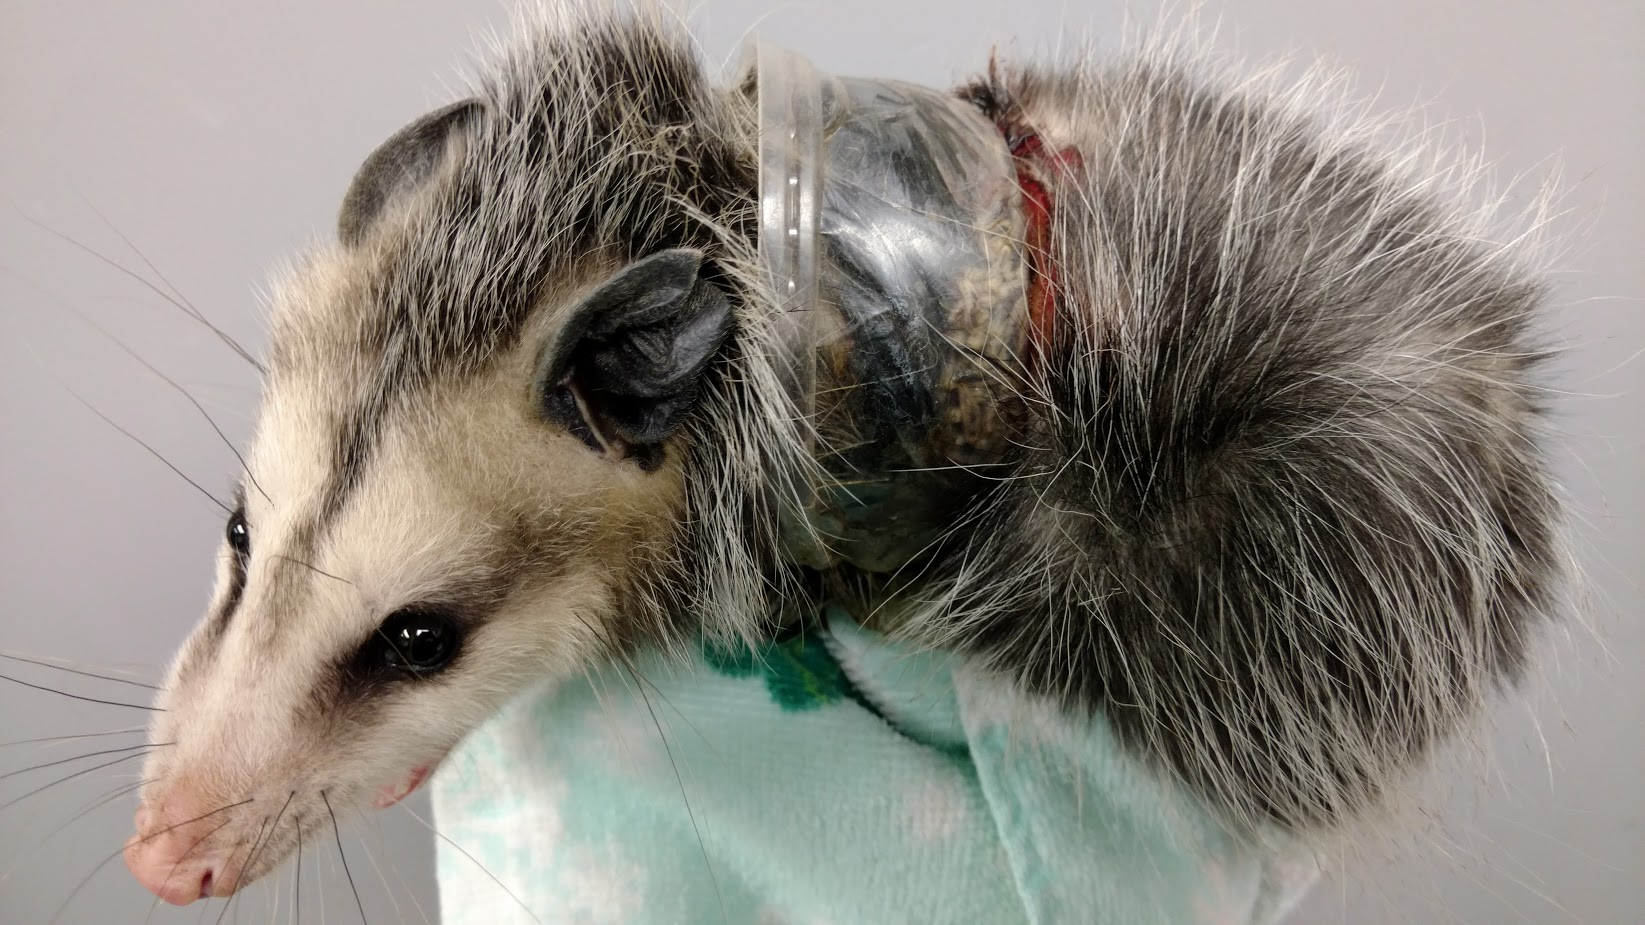 Garbage Causes Big Problems for Little Opossum